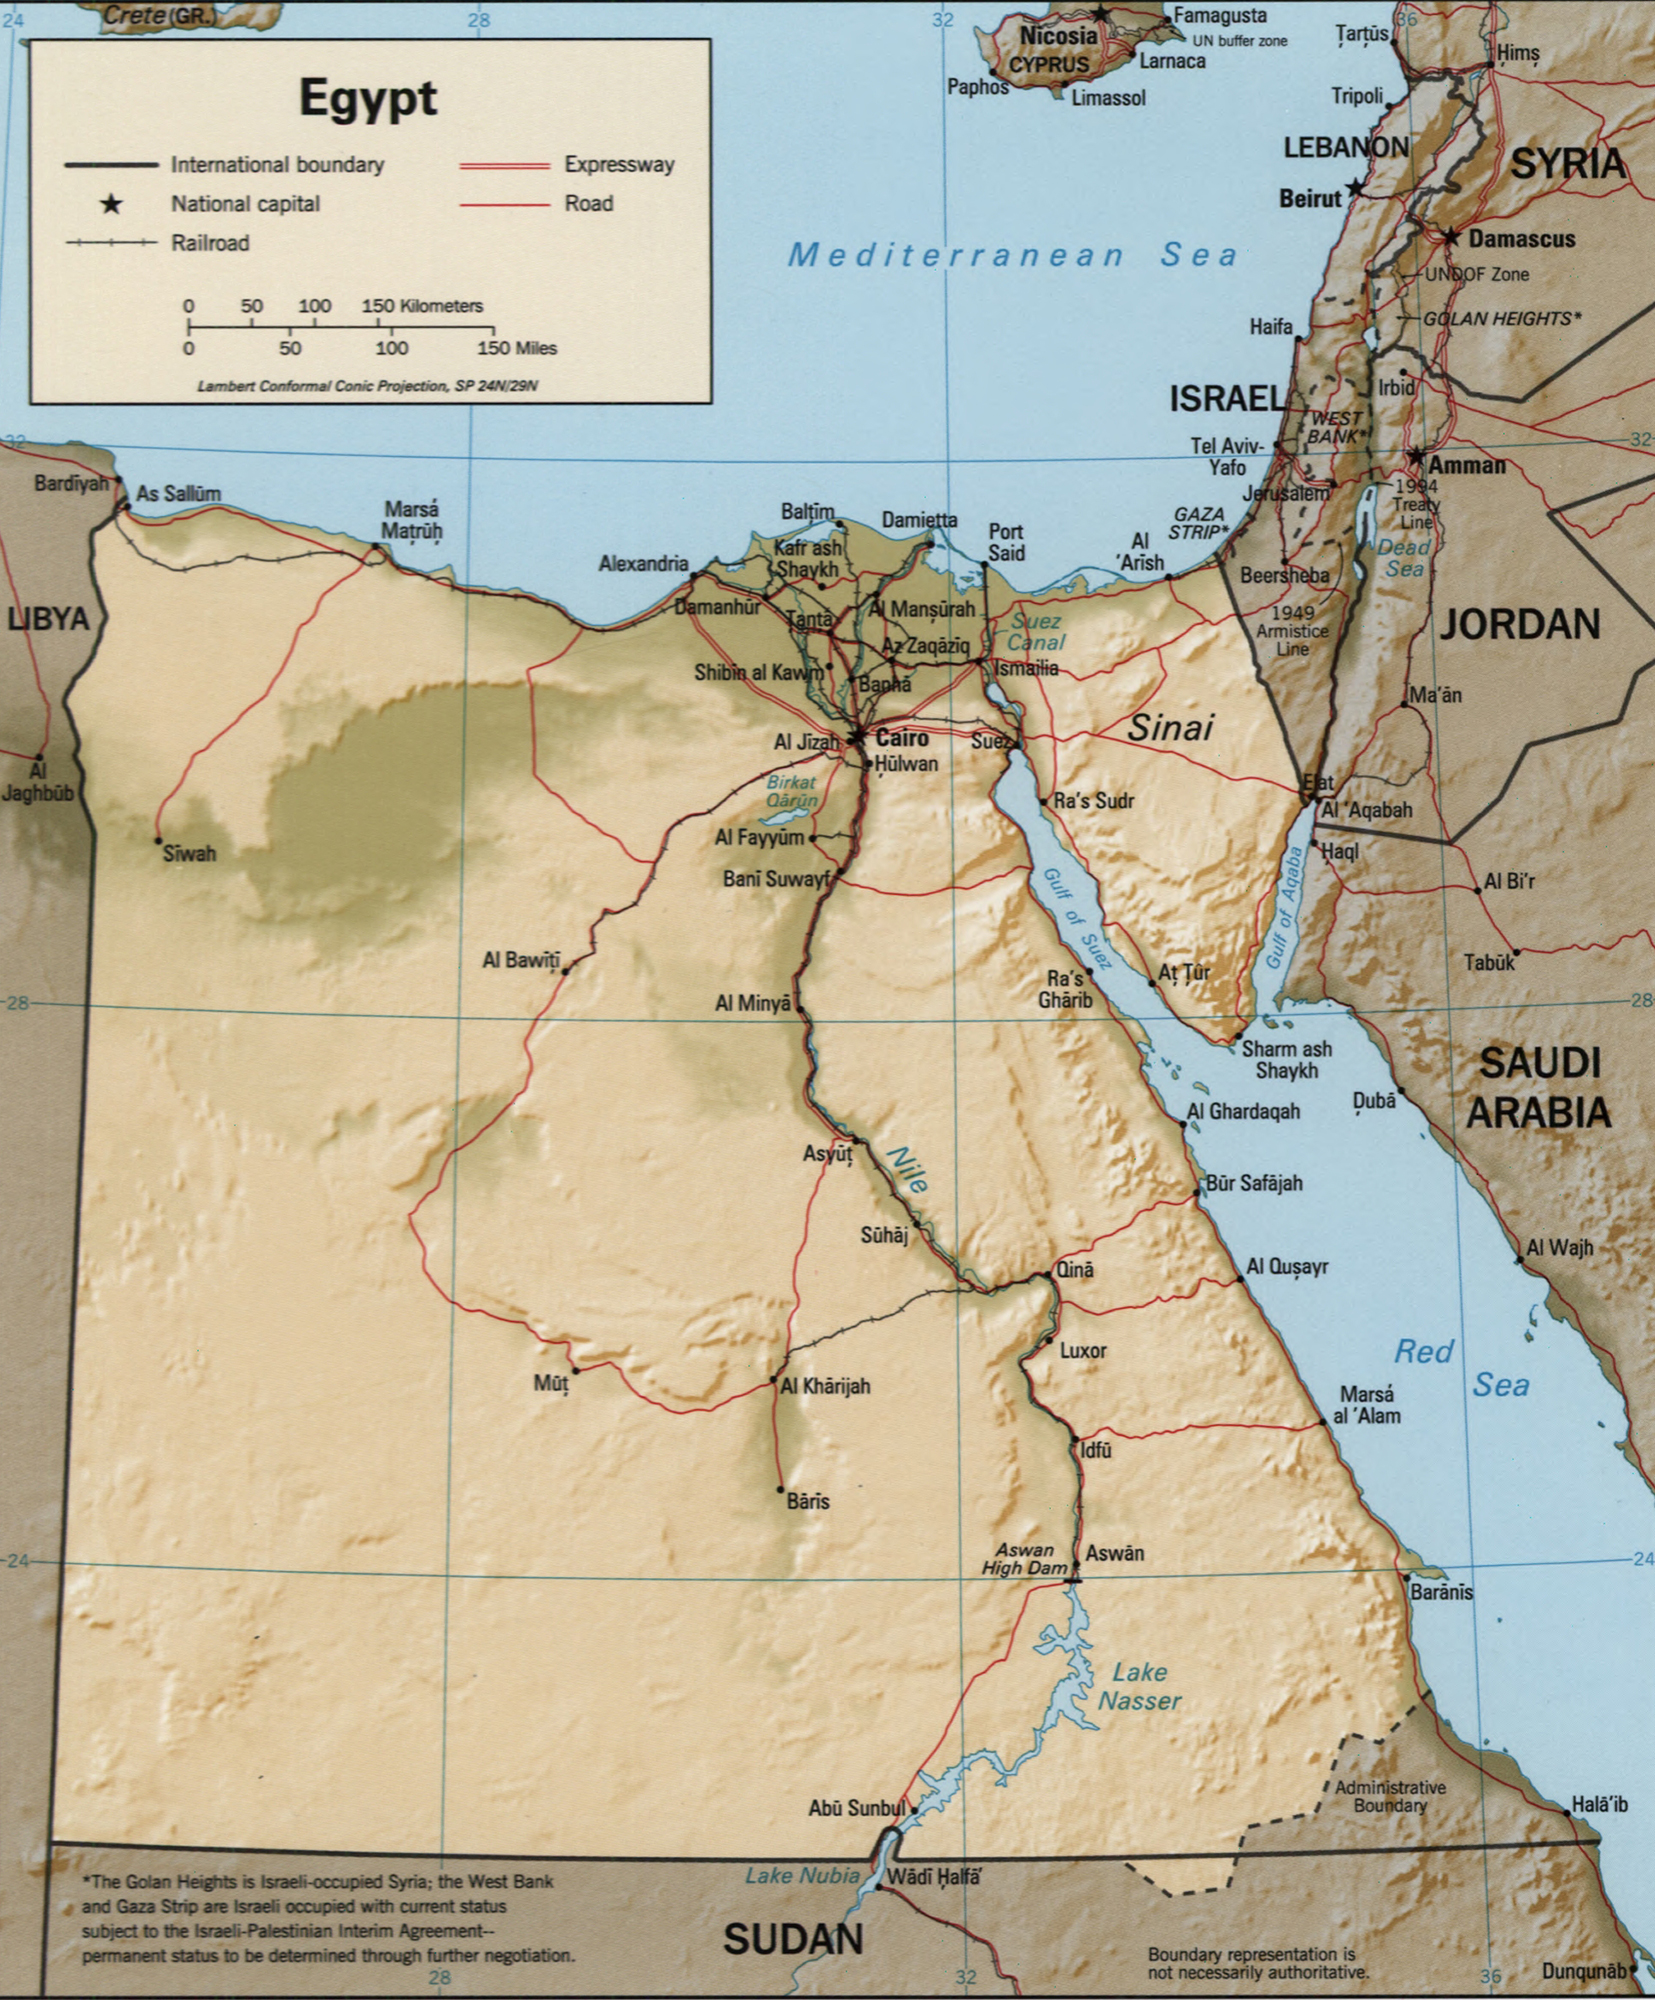 Map Archive - Africa on map of egypt ny, country of egypt 1400 bc, map ancient egypt 30 bc, map of egypt atb c 1450, map of egypt pe, map of egypt bce, map of king intermediate,